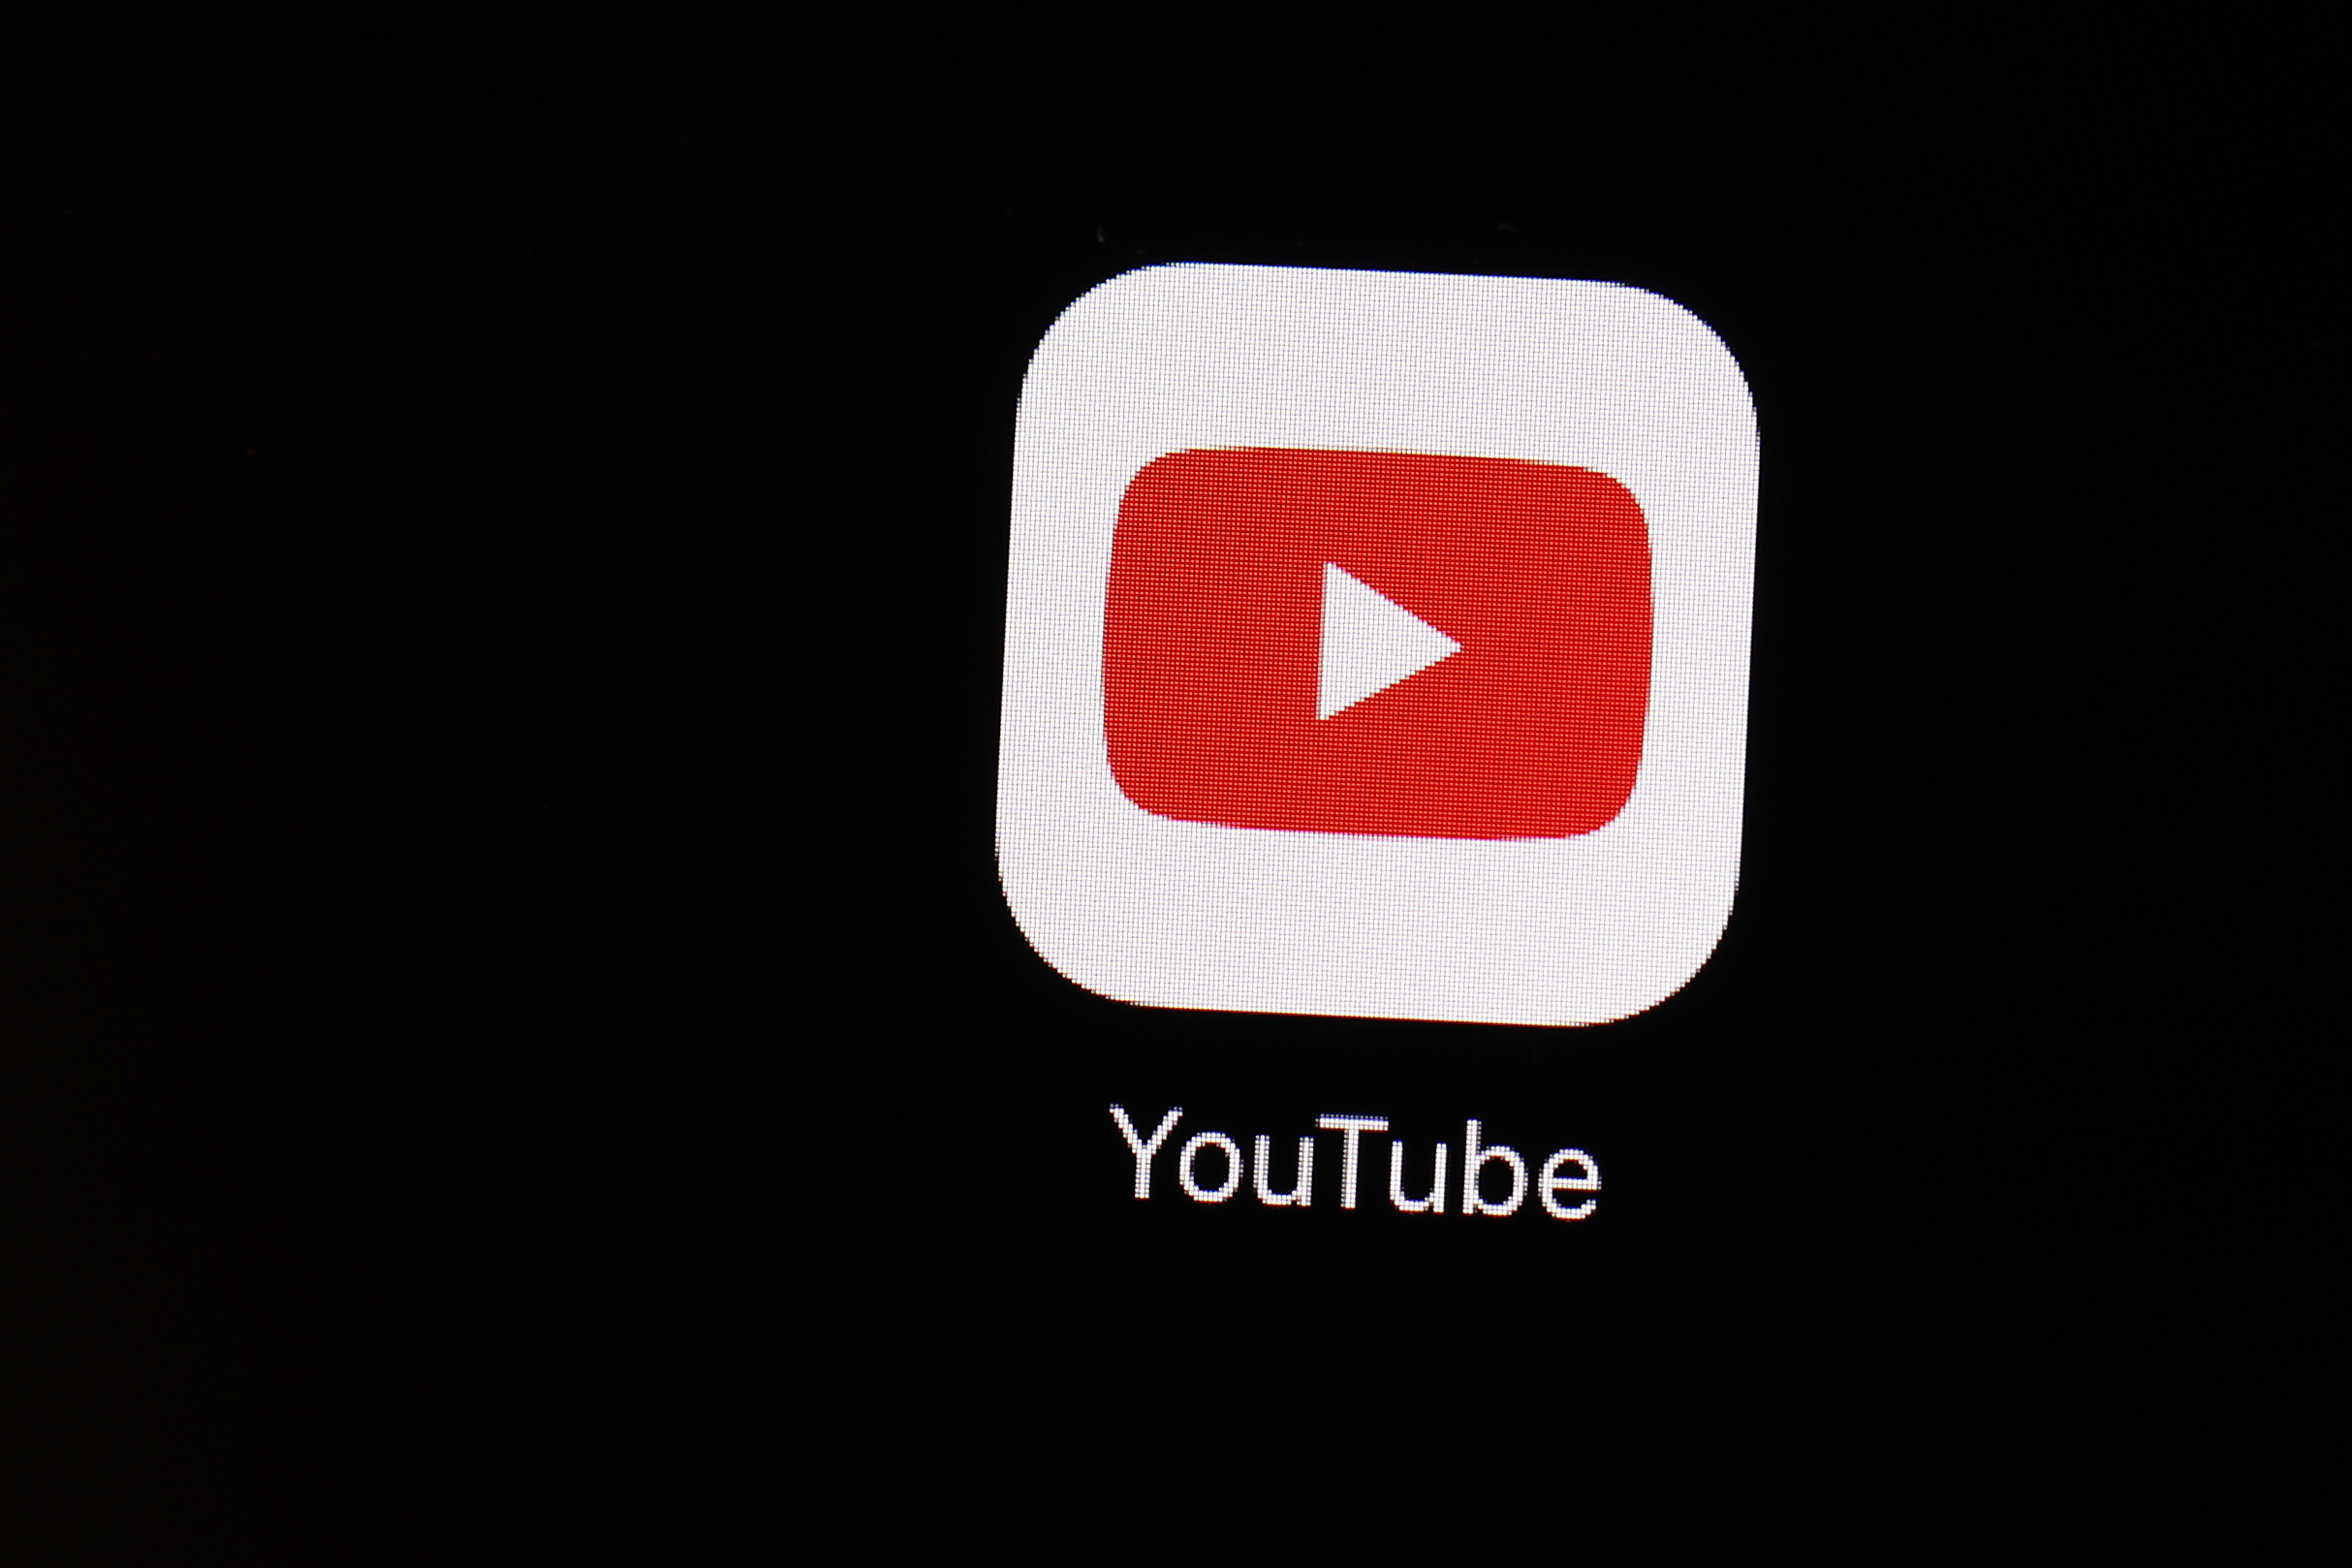 YouTube under federal investigation over alleged child privacy violations